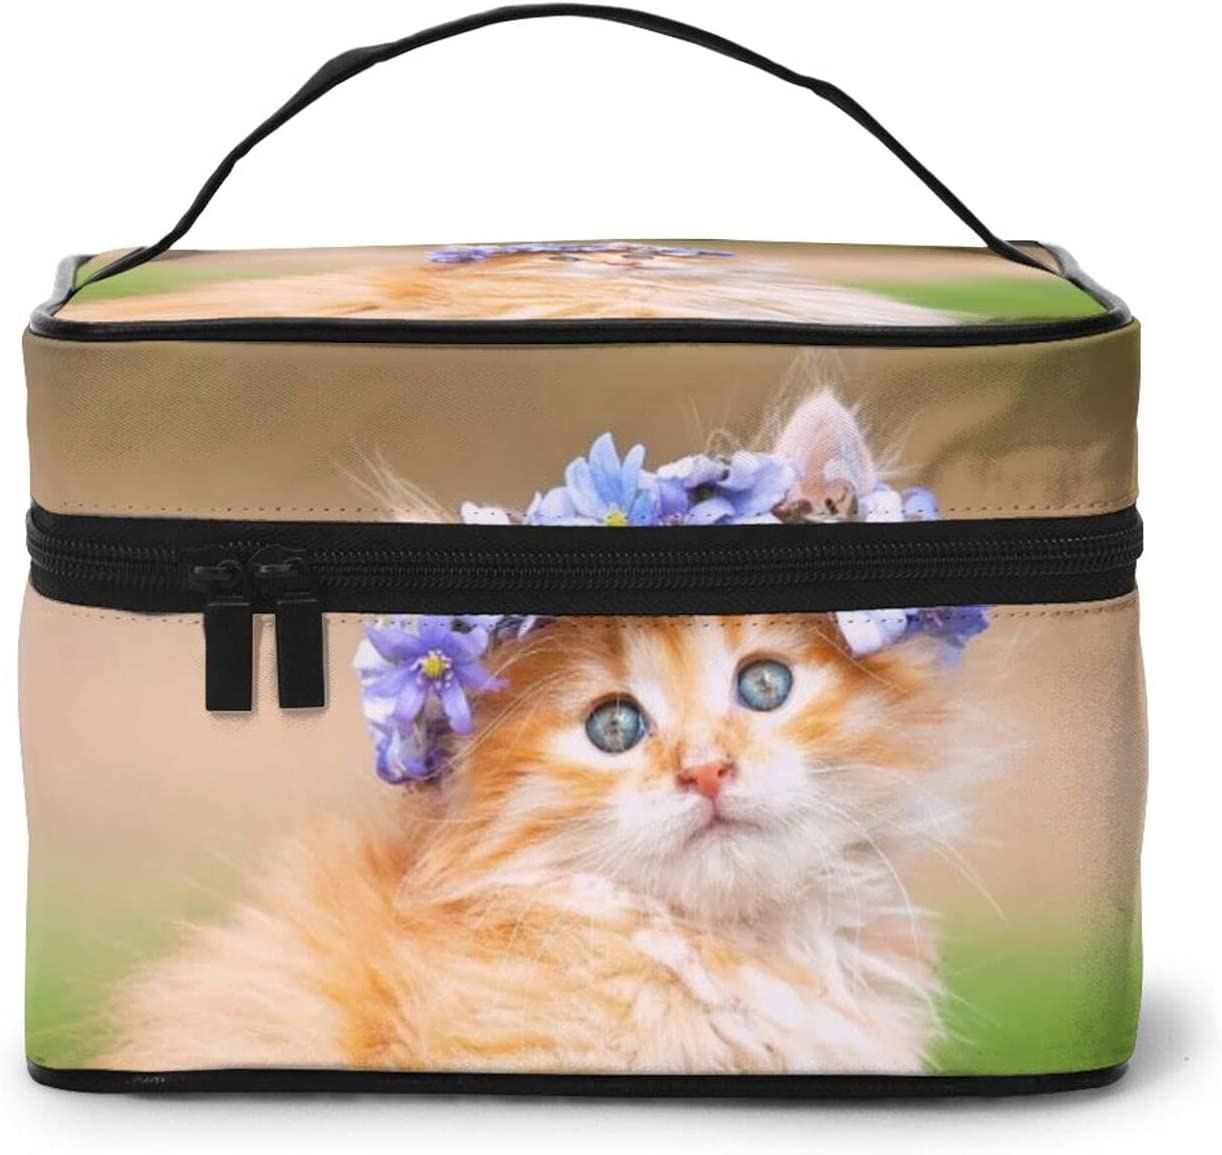 Max Max 56% OFF 77% OFF Cute Kitten Adorable Hairband Make Cosmetic Bagtravel Reusable